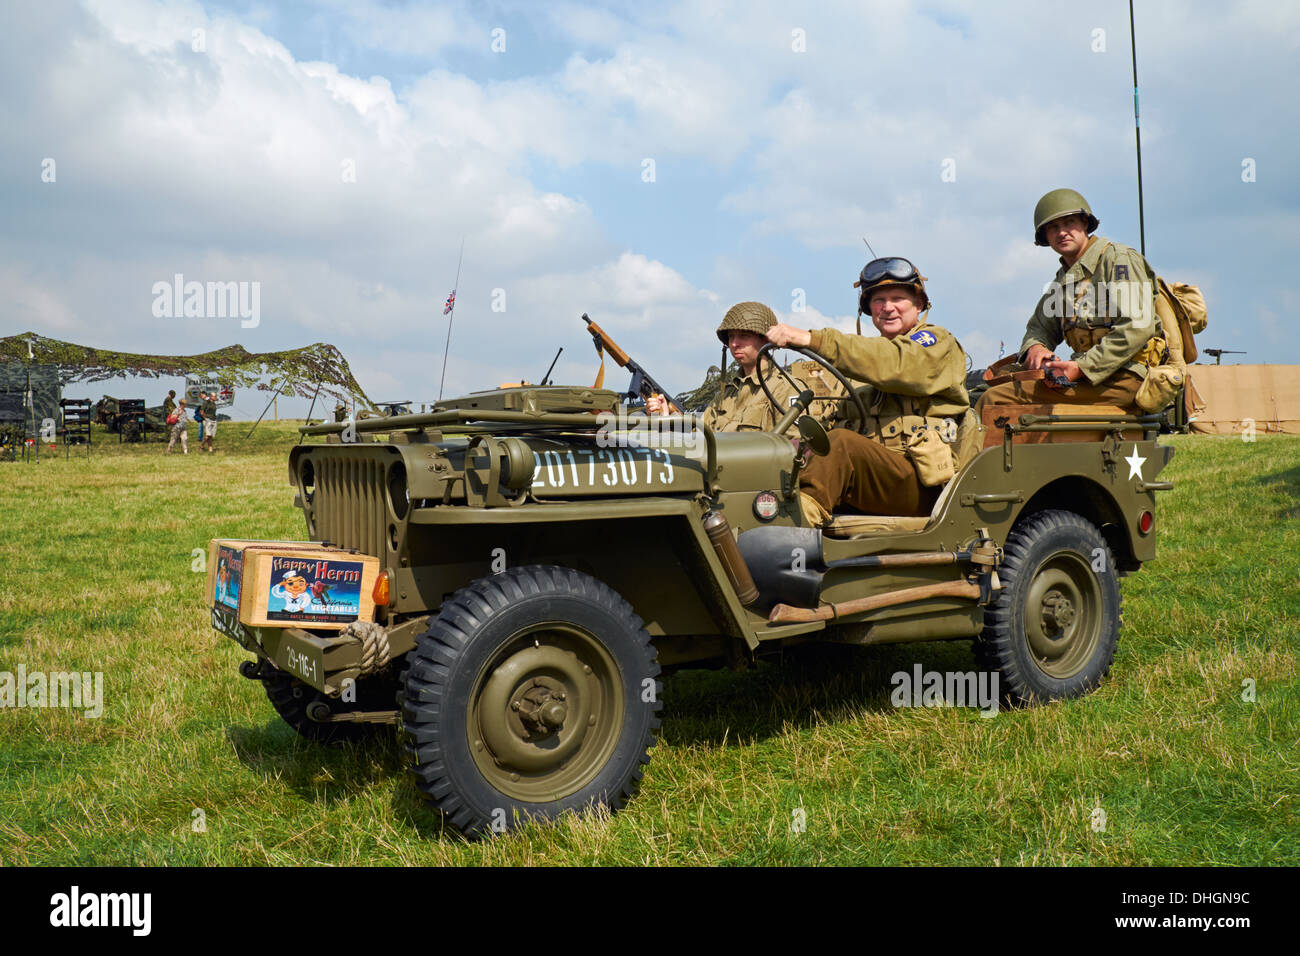 Men posing in ww2 us army uniforms in a 1943 willys mb jeep rauceby war weekend lincolnshire england